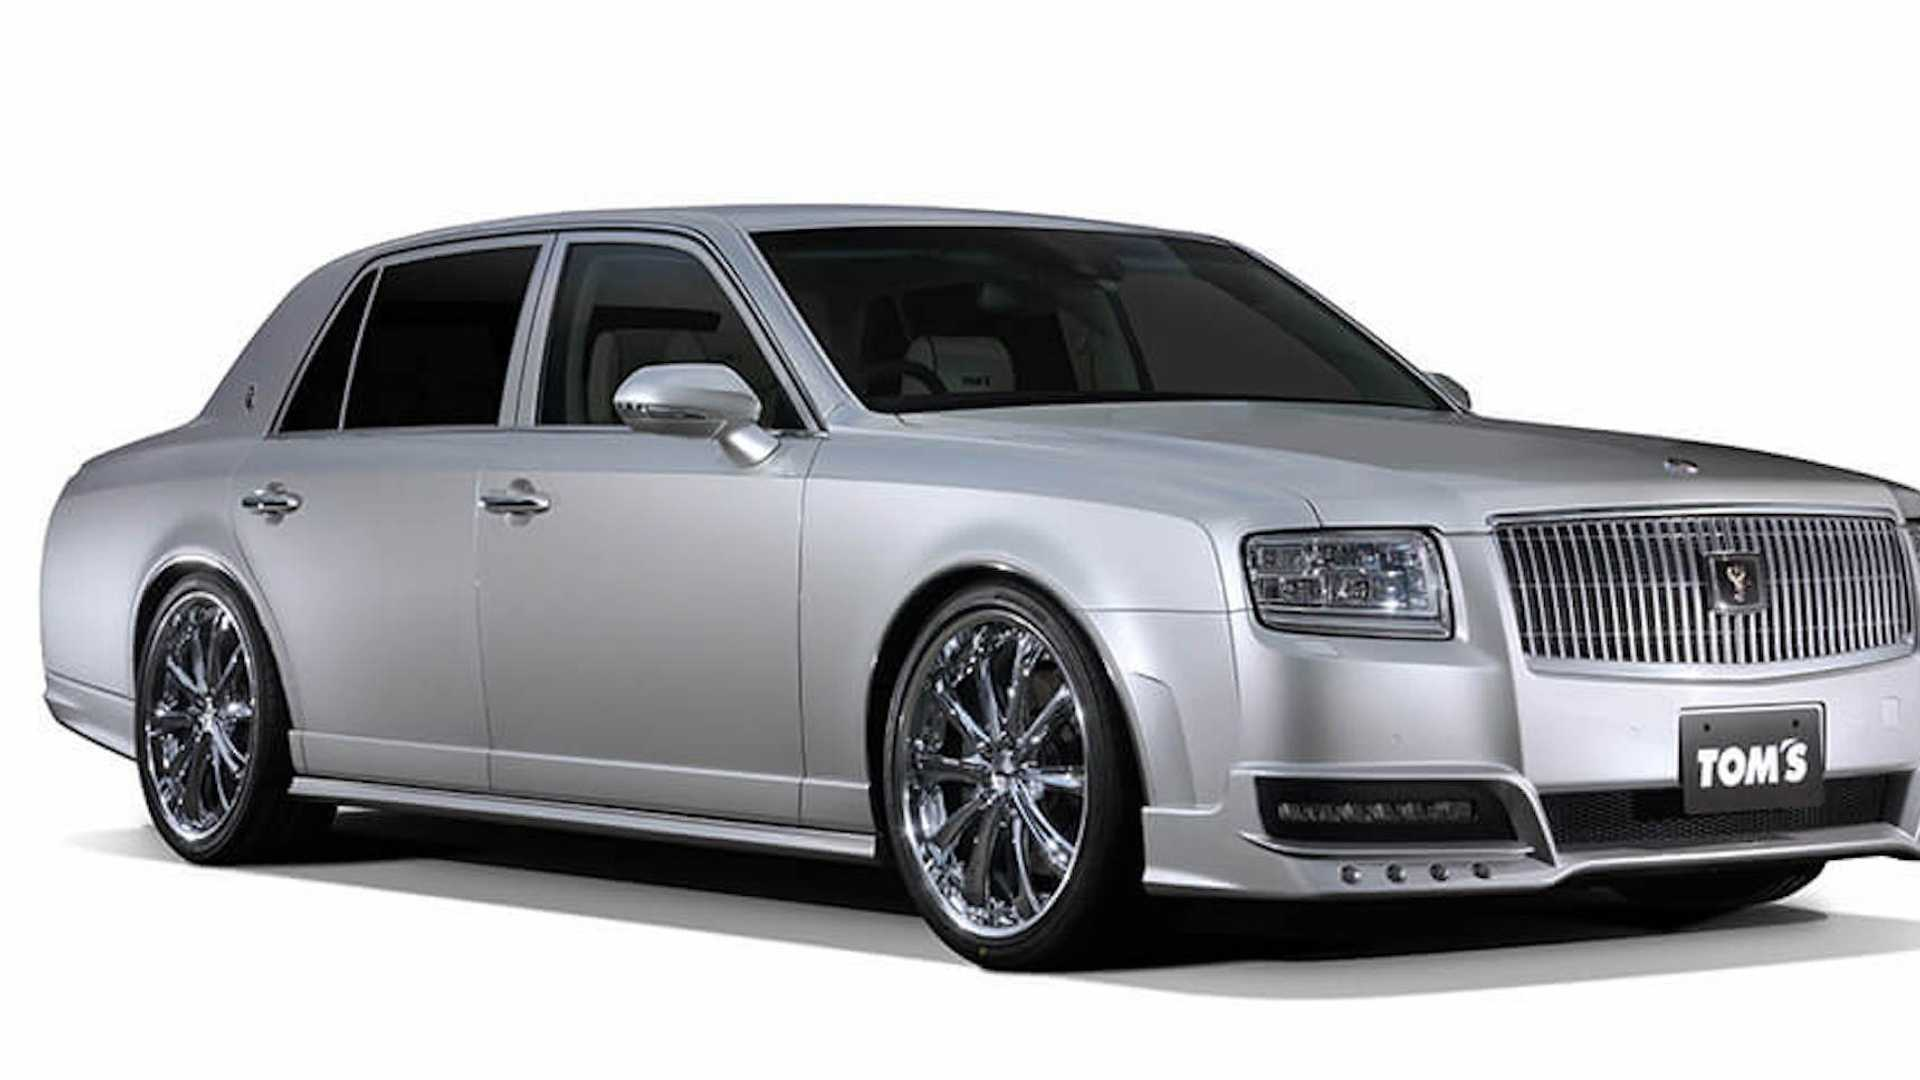 Tom's Racing Announces Limited Edition Toyota Century